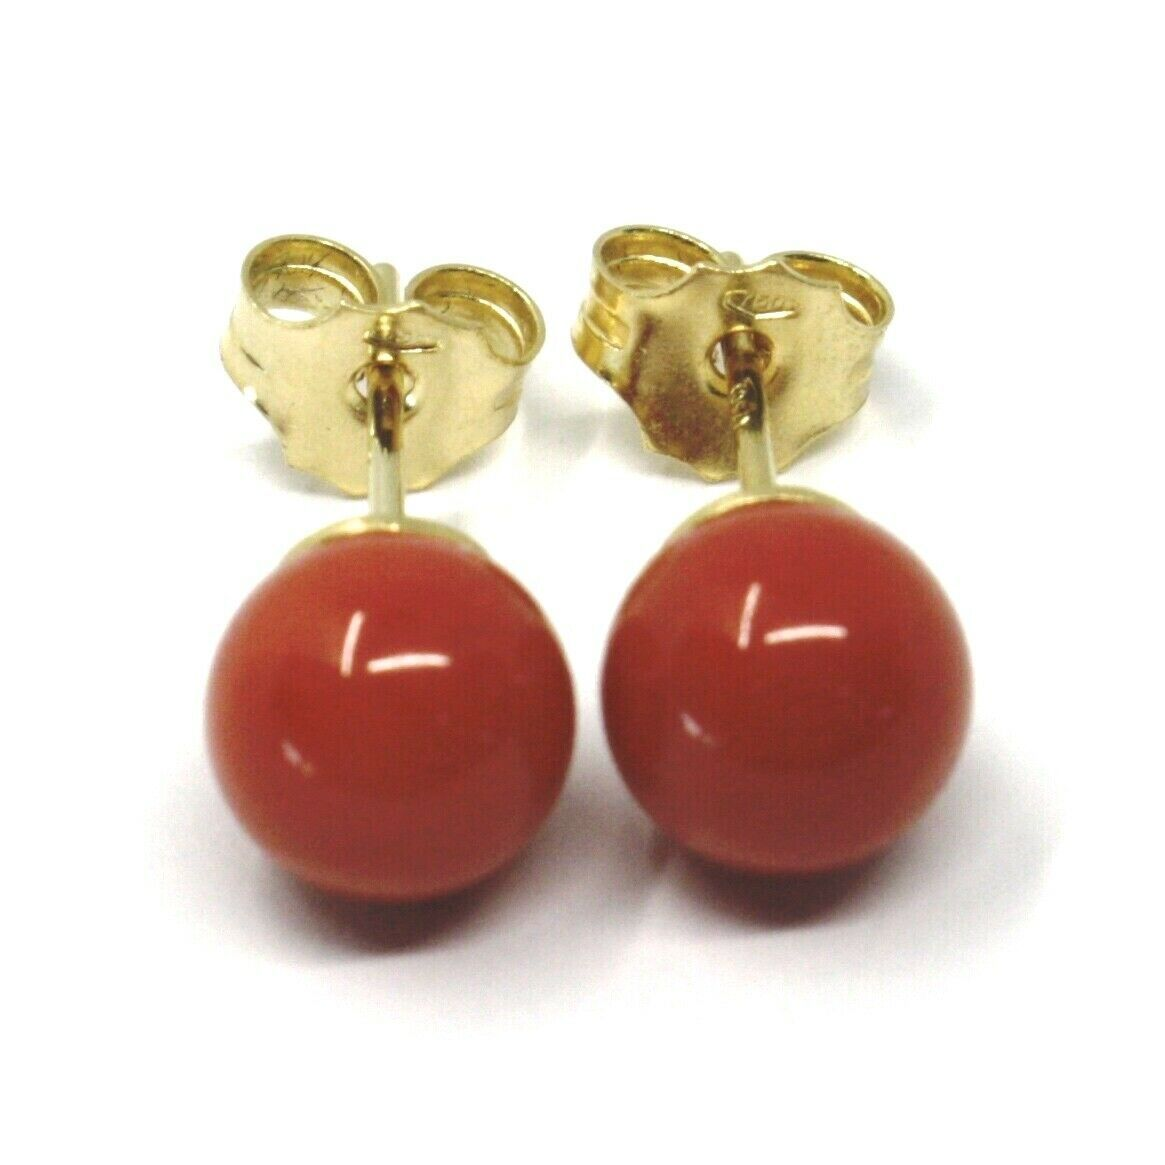 18K YELLOW GOLD BALLS SPHERES RED CORAL BUTTON EARRINGS, 7.5 MM, 0.3 INCHES